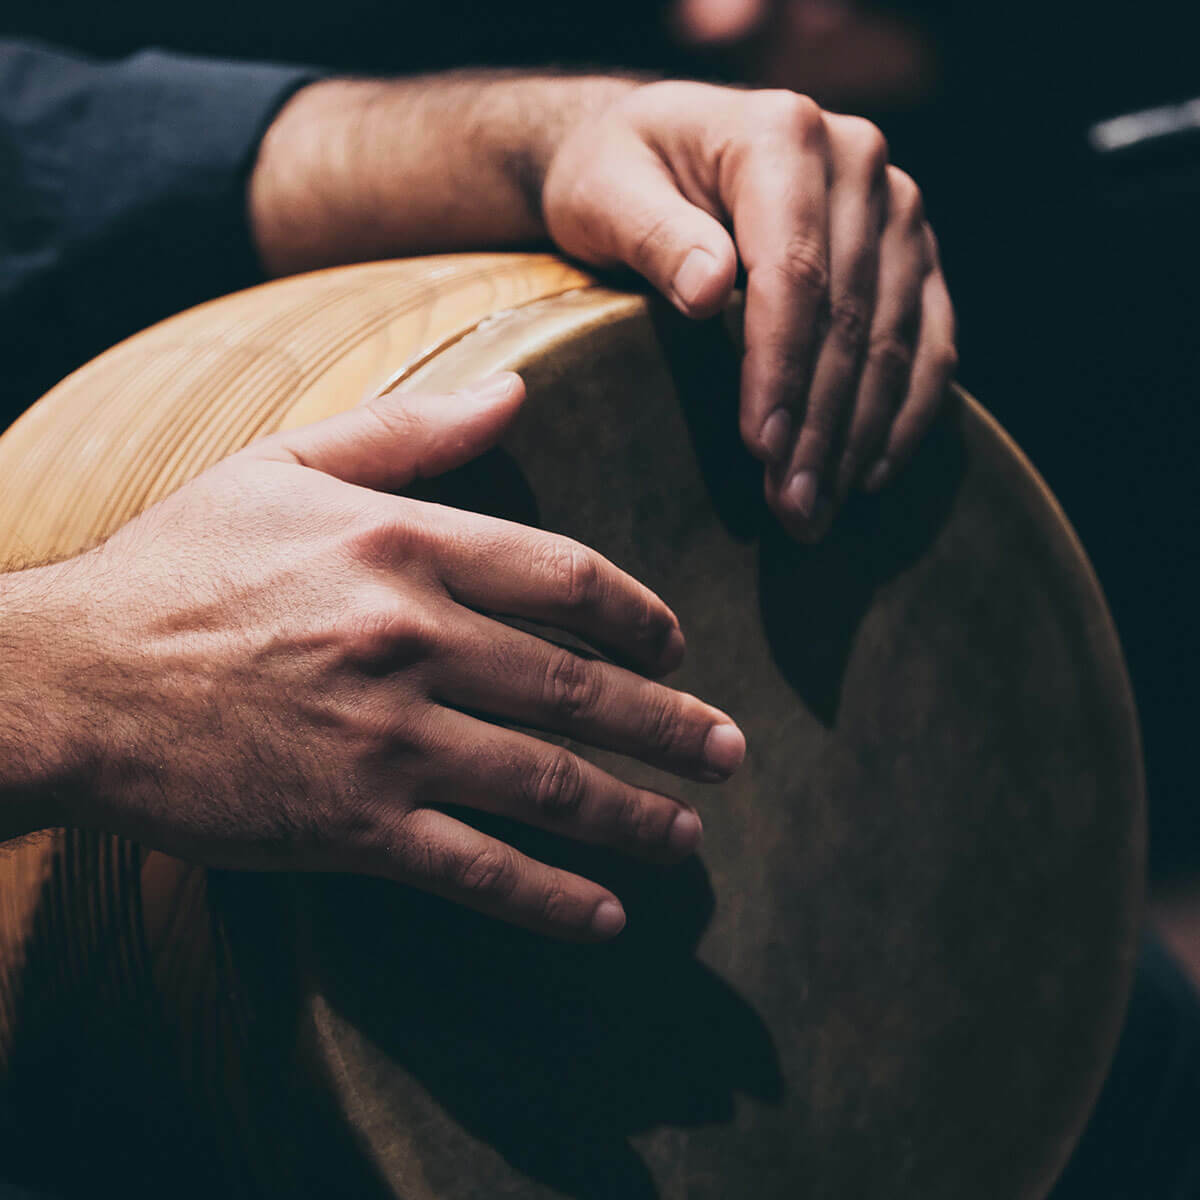 Hands playing drum